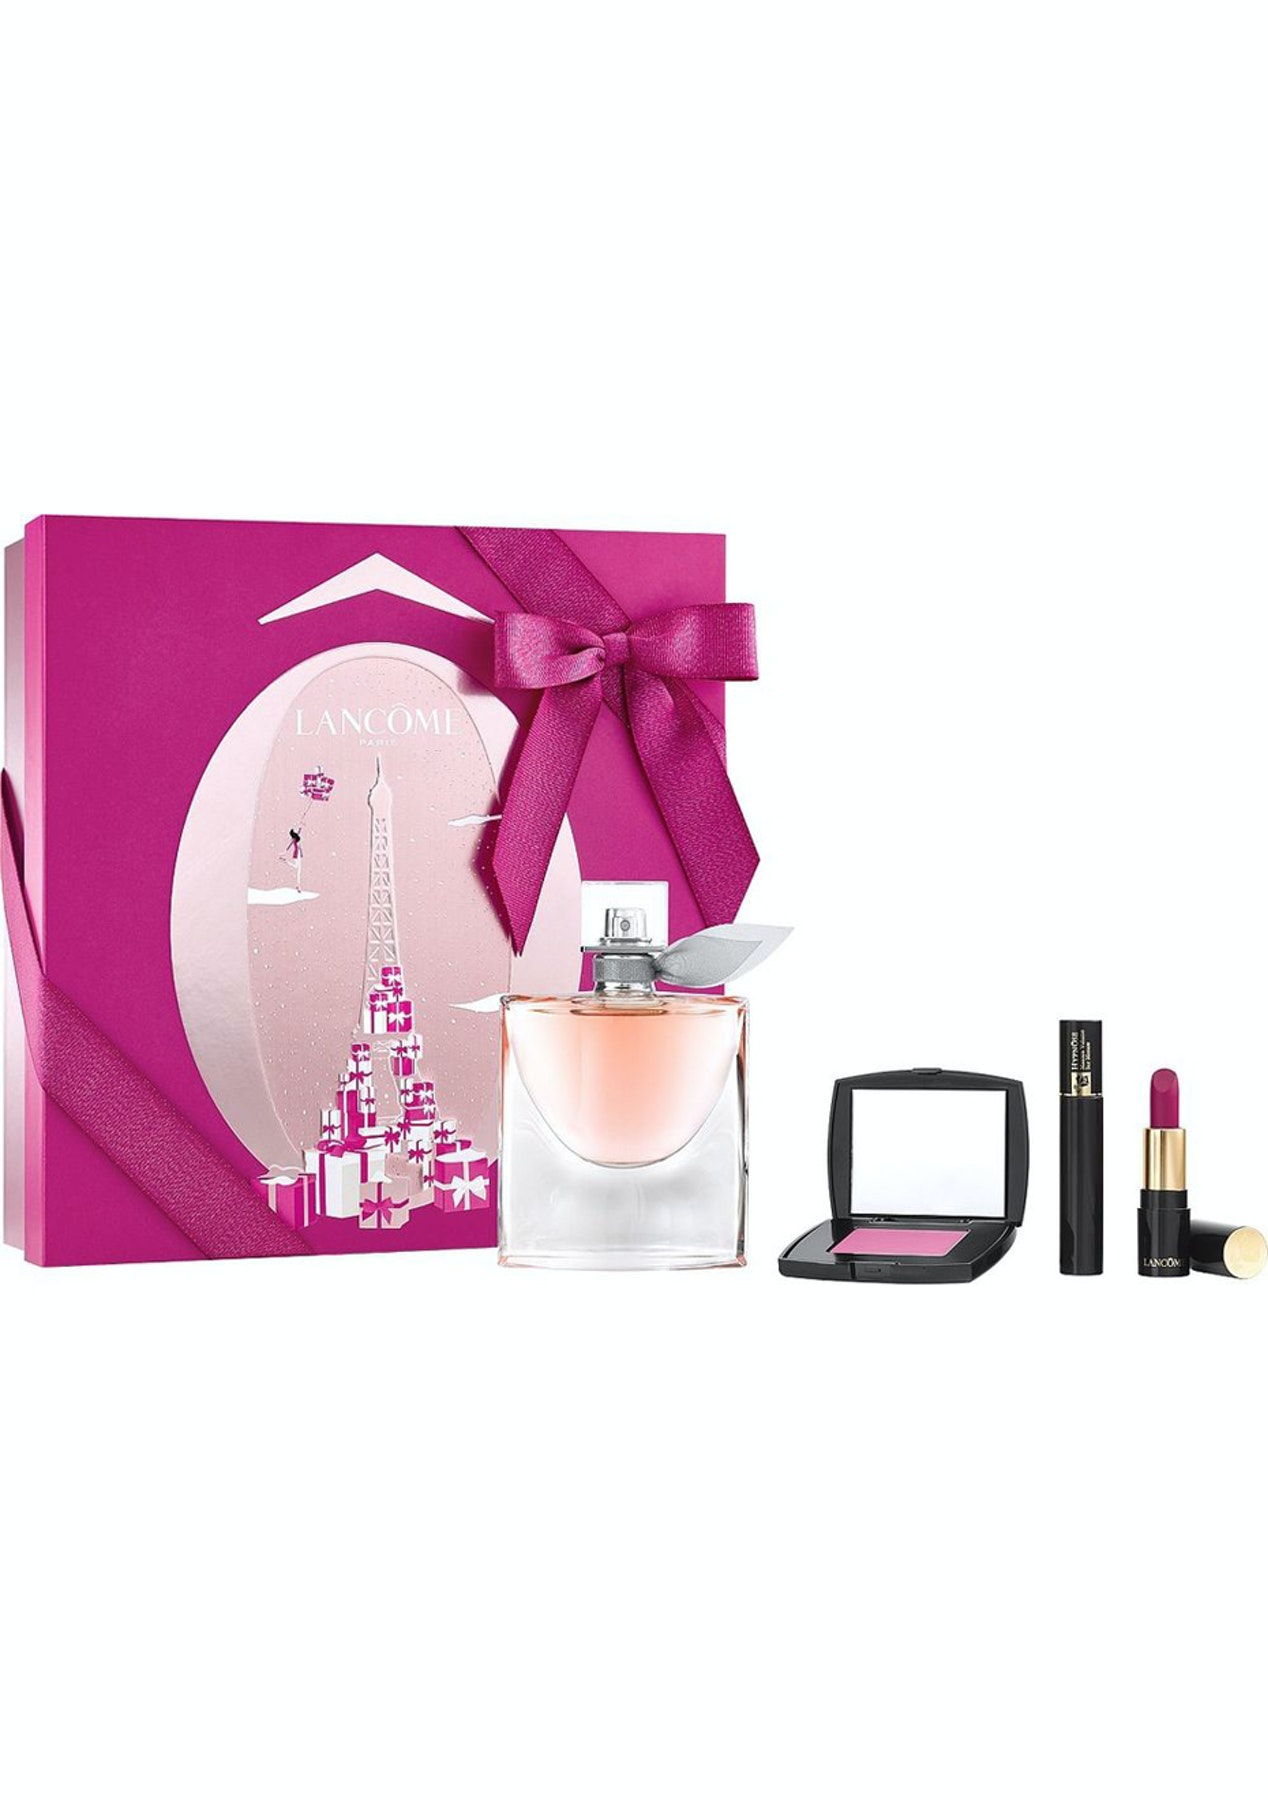 816f3f3effb91 Lancome La Vie Est Belle 4pc Set - Express Shipping Perfume Gifts From   19.95 - Onceit